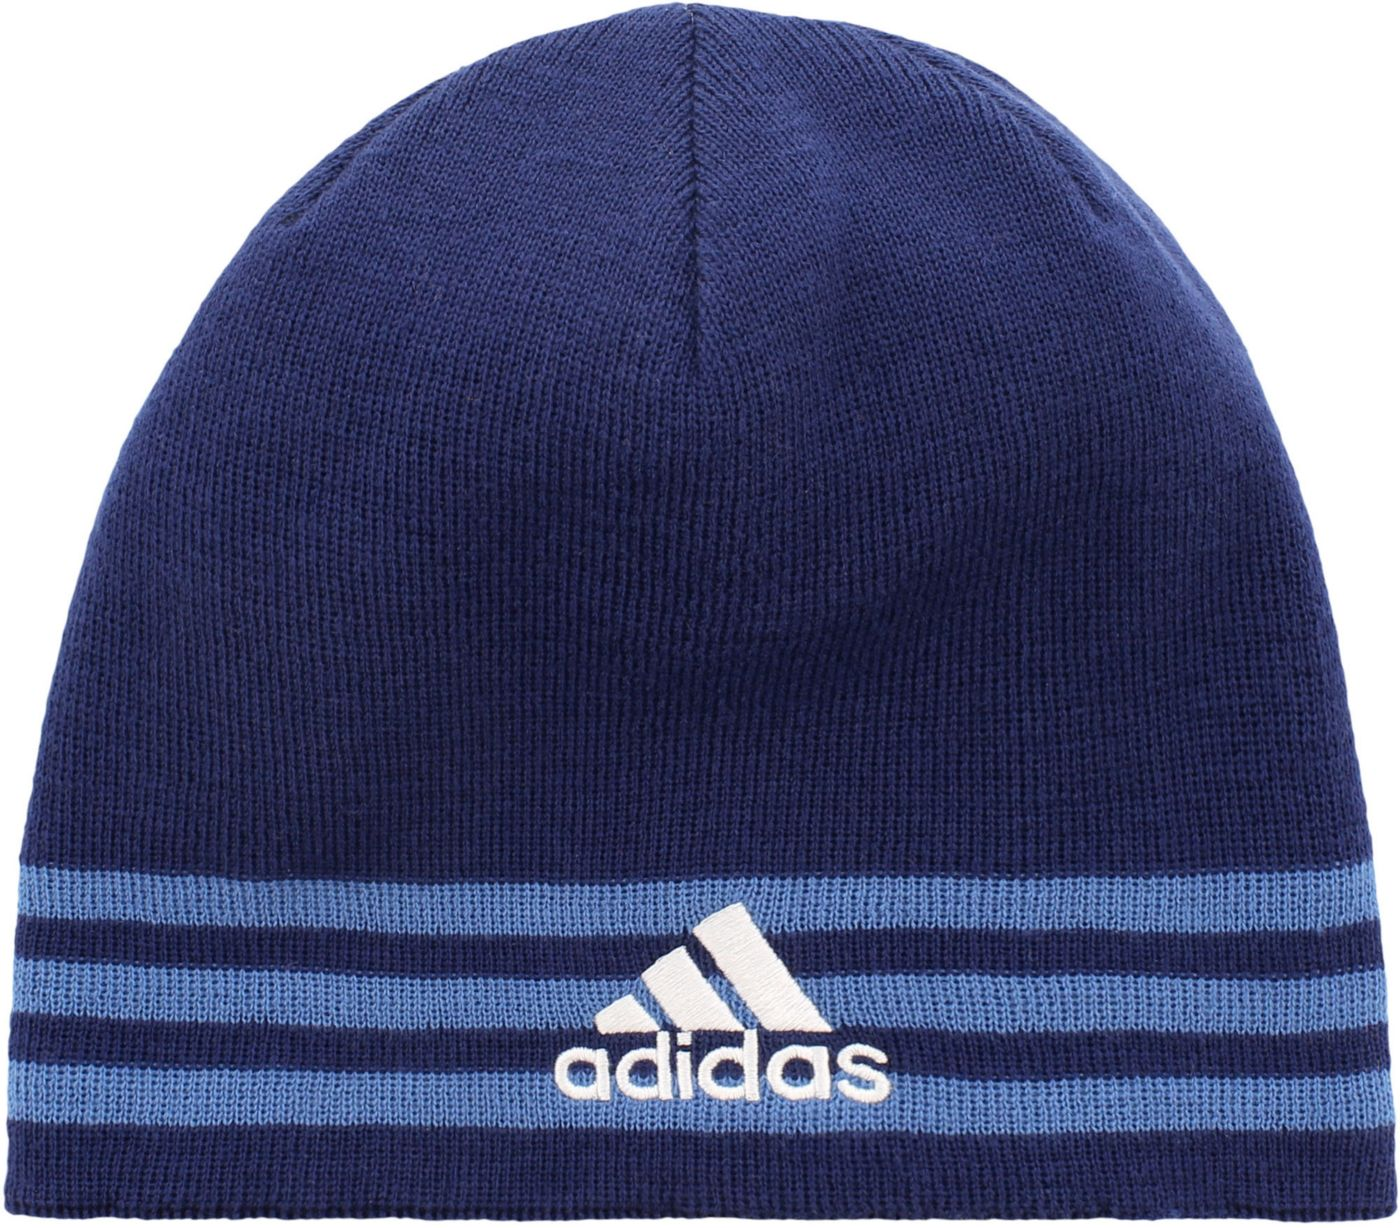 adidas Youth Eclipse II Reversible Beanie